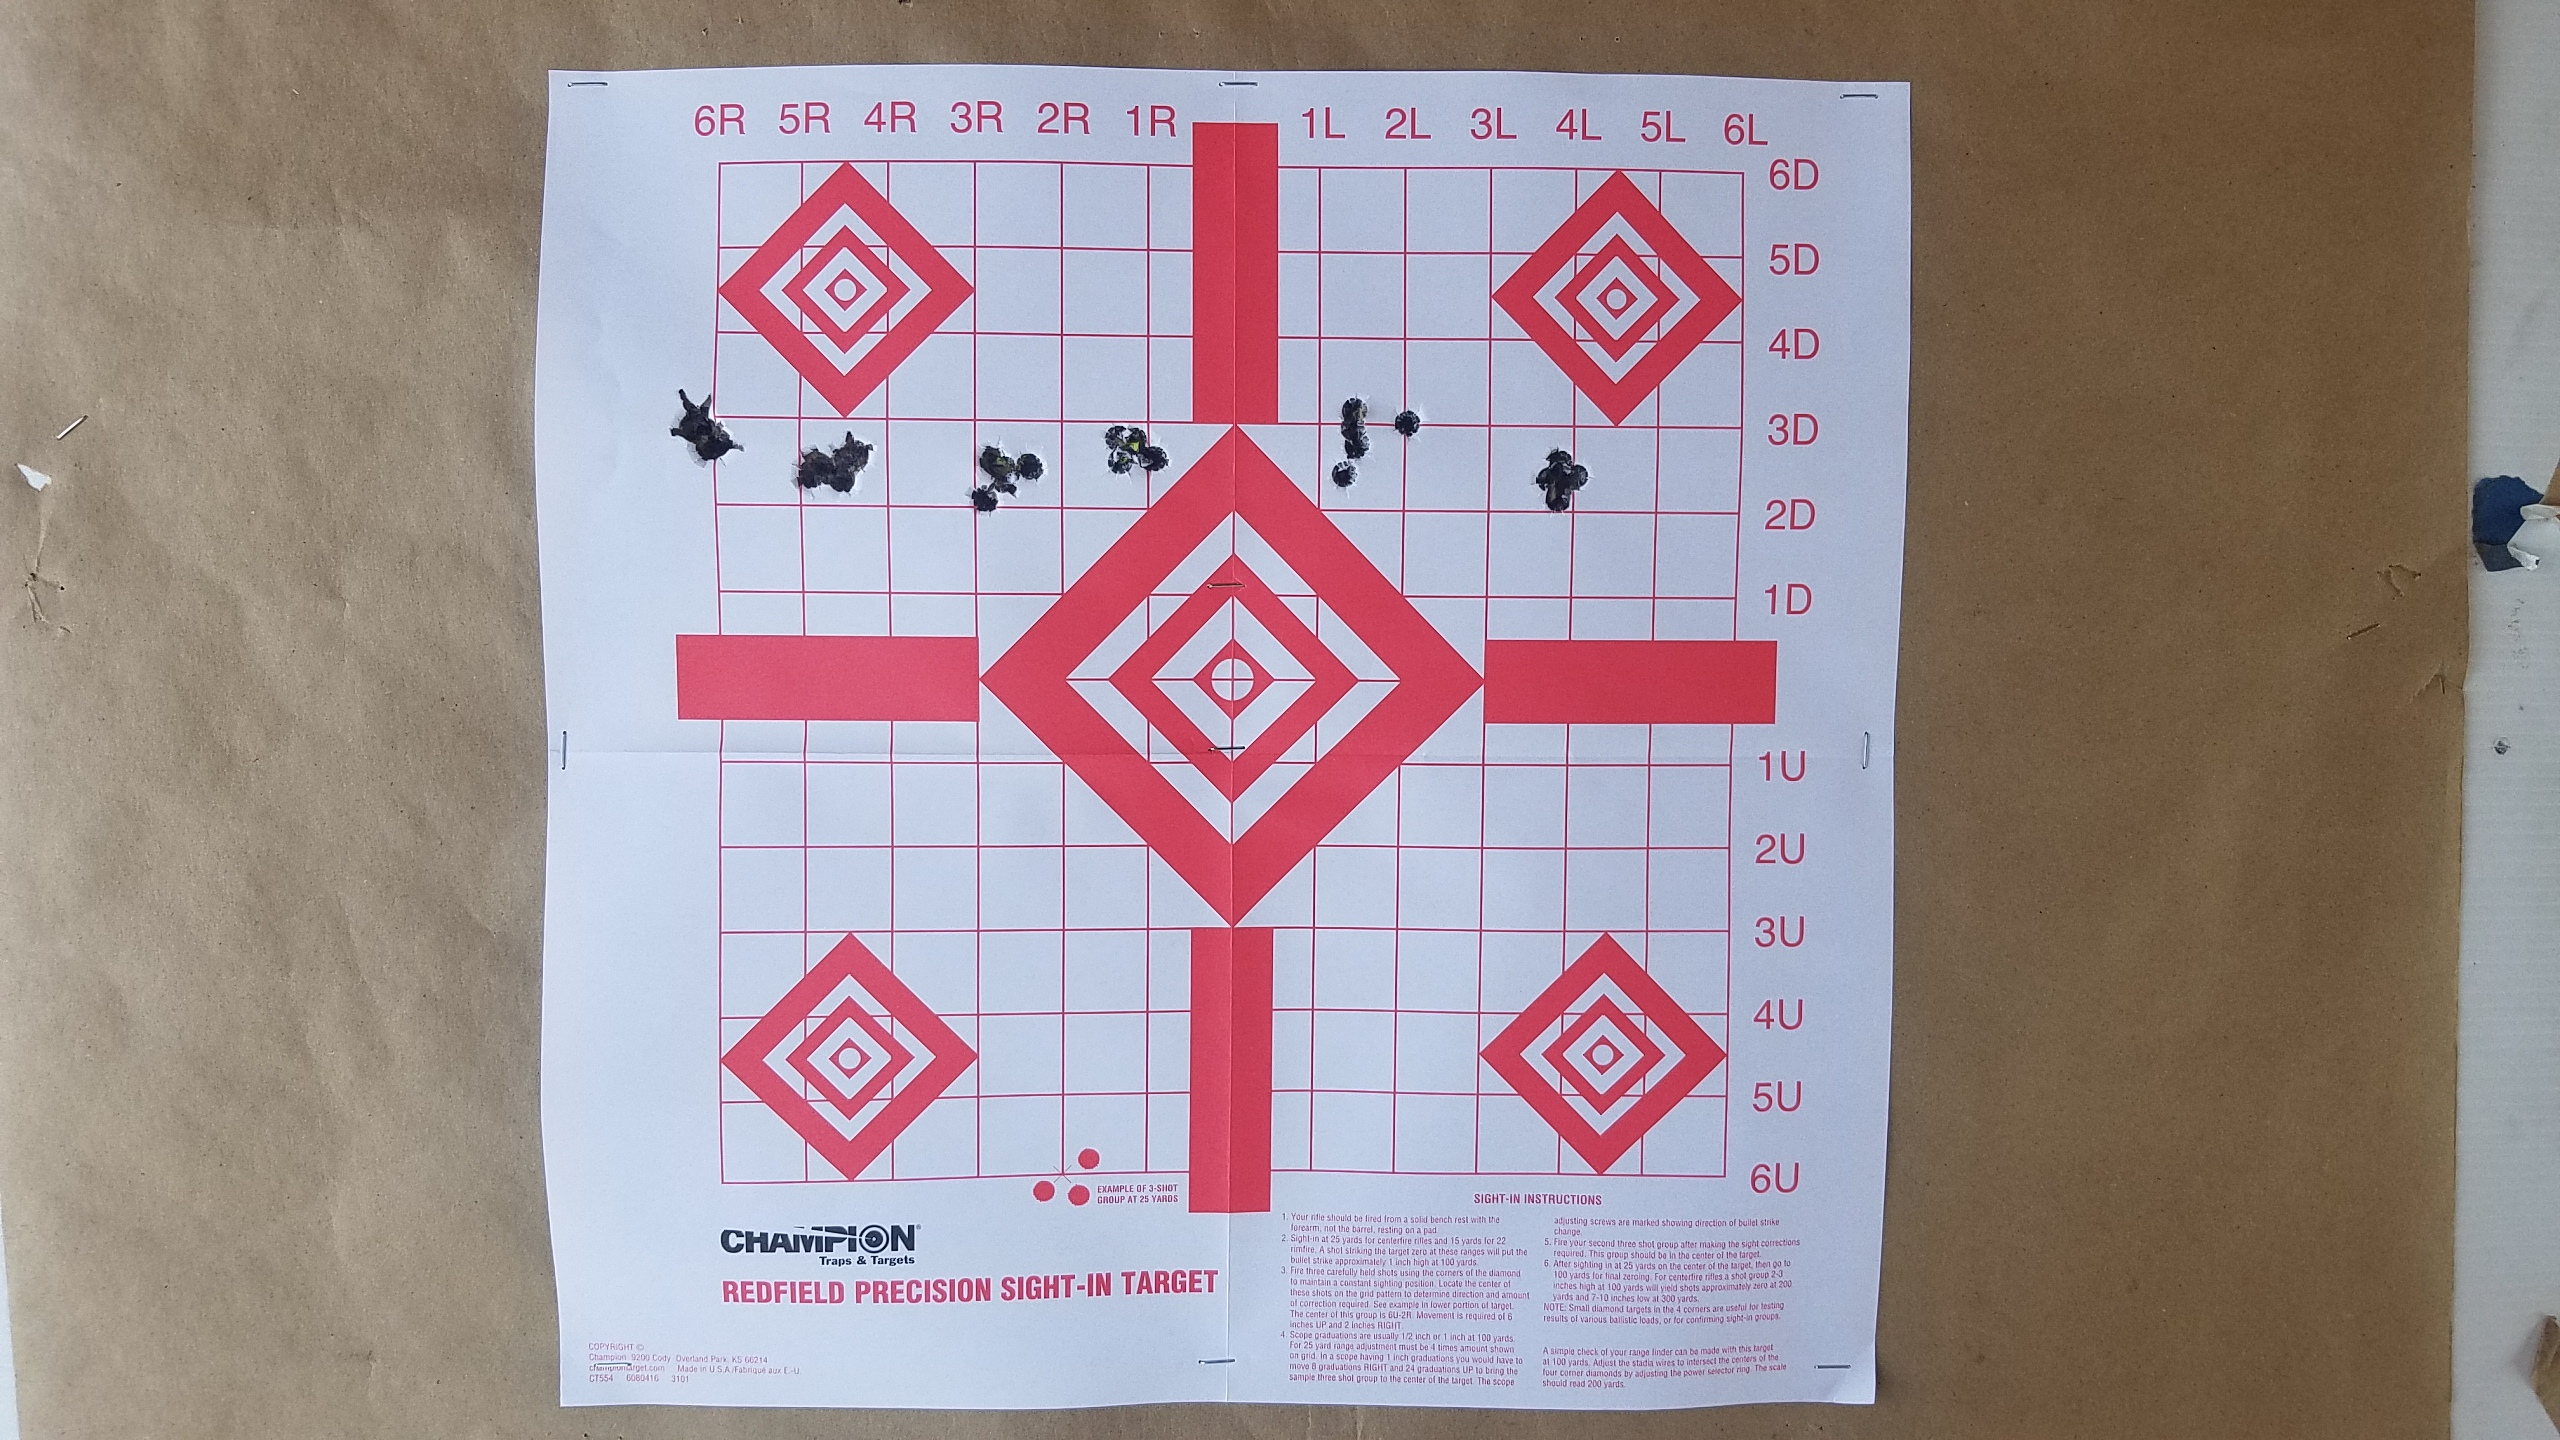 six-5-shot-groups-with-eagle-eye-308-win-175gr-otm-ammunition.jpg